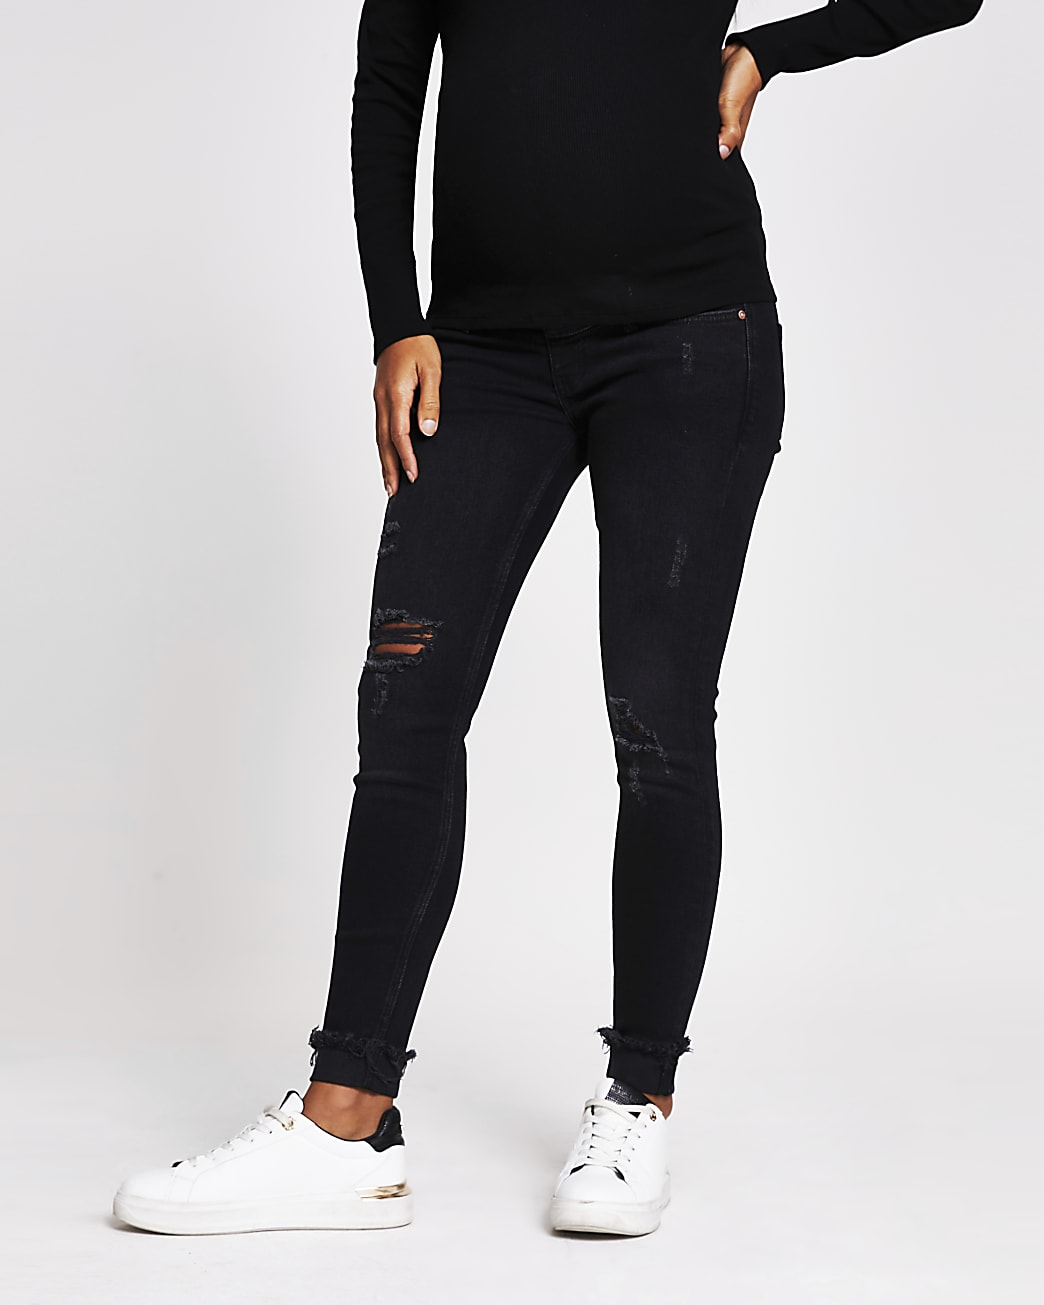 Black ripped mid rise maternity skinny jeans